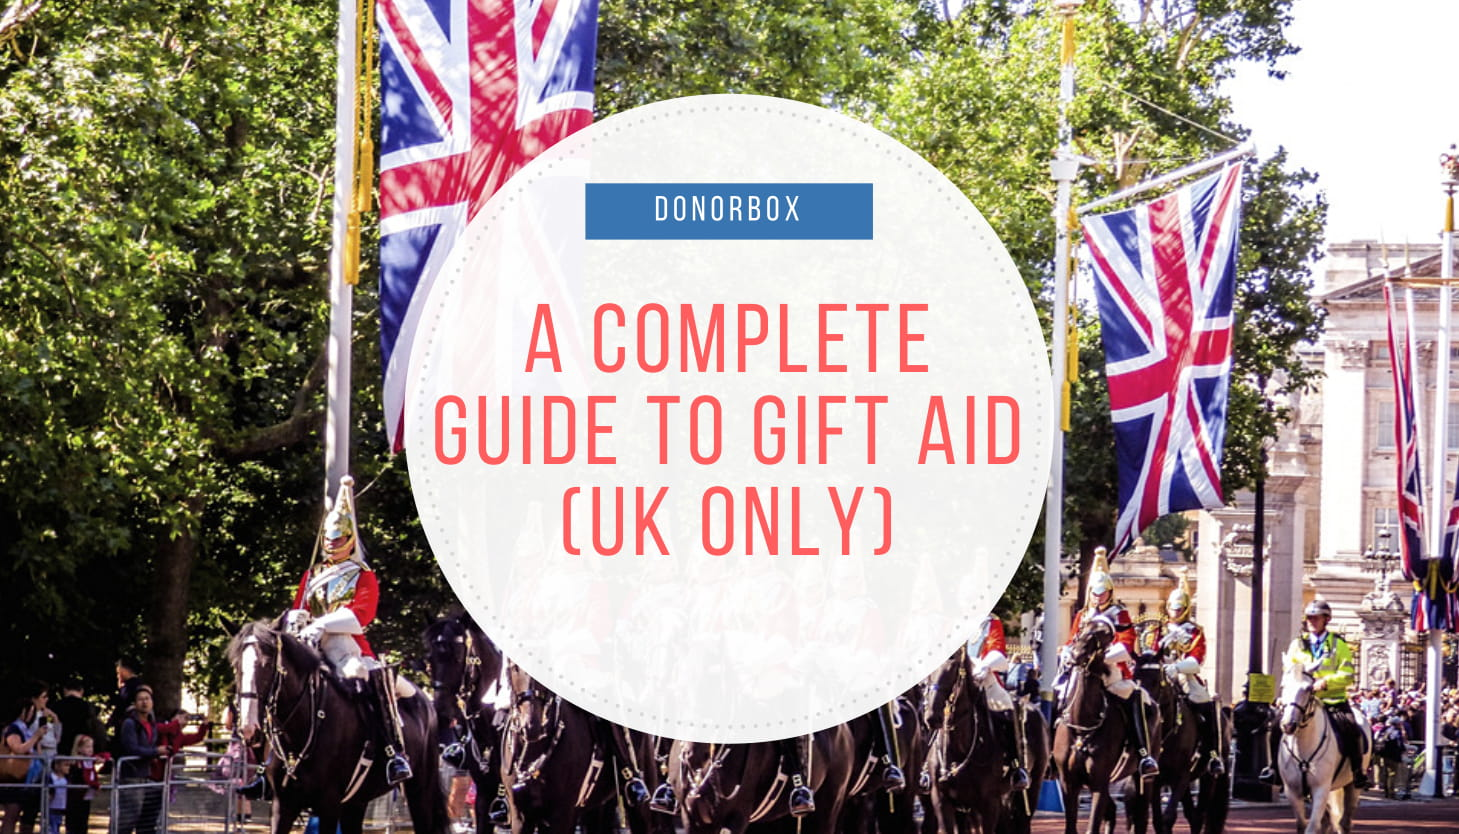 A Complete Guide to Gift Aid (UK Only)